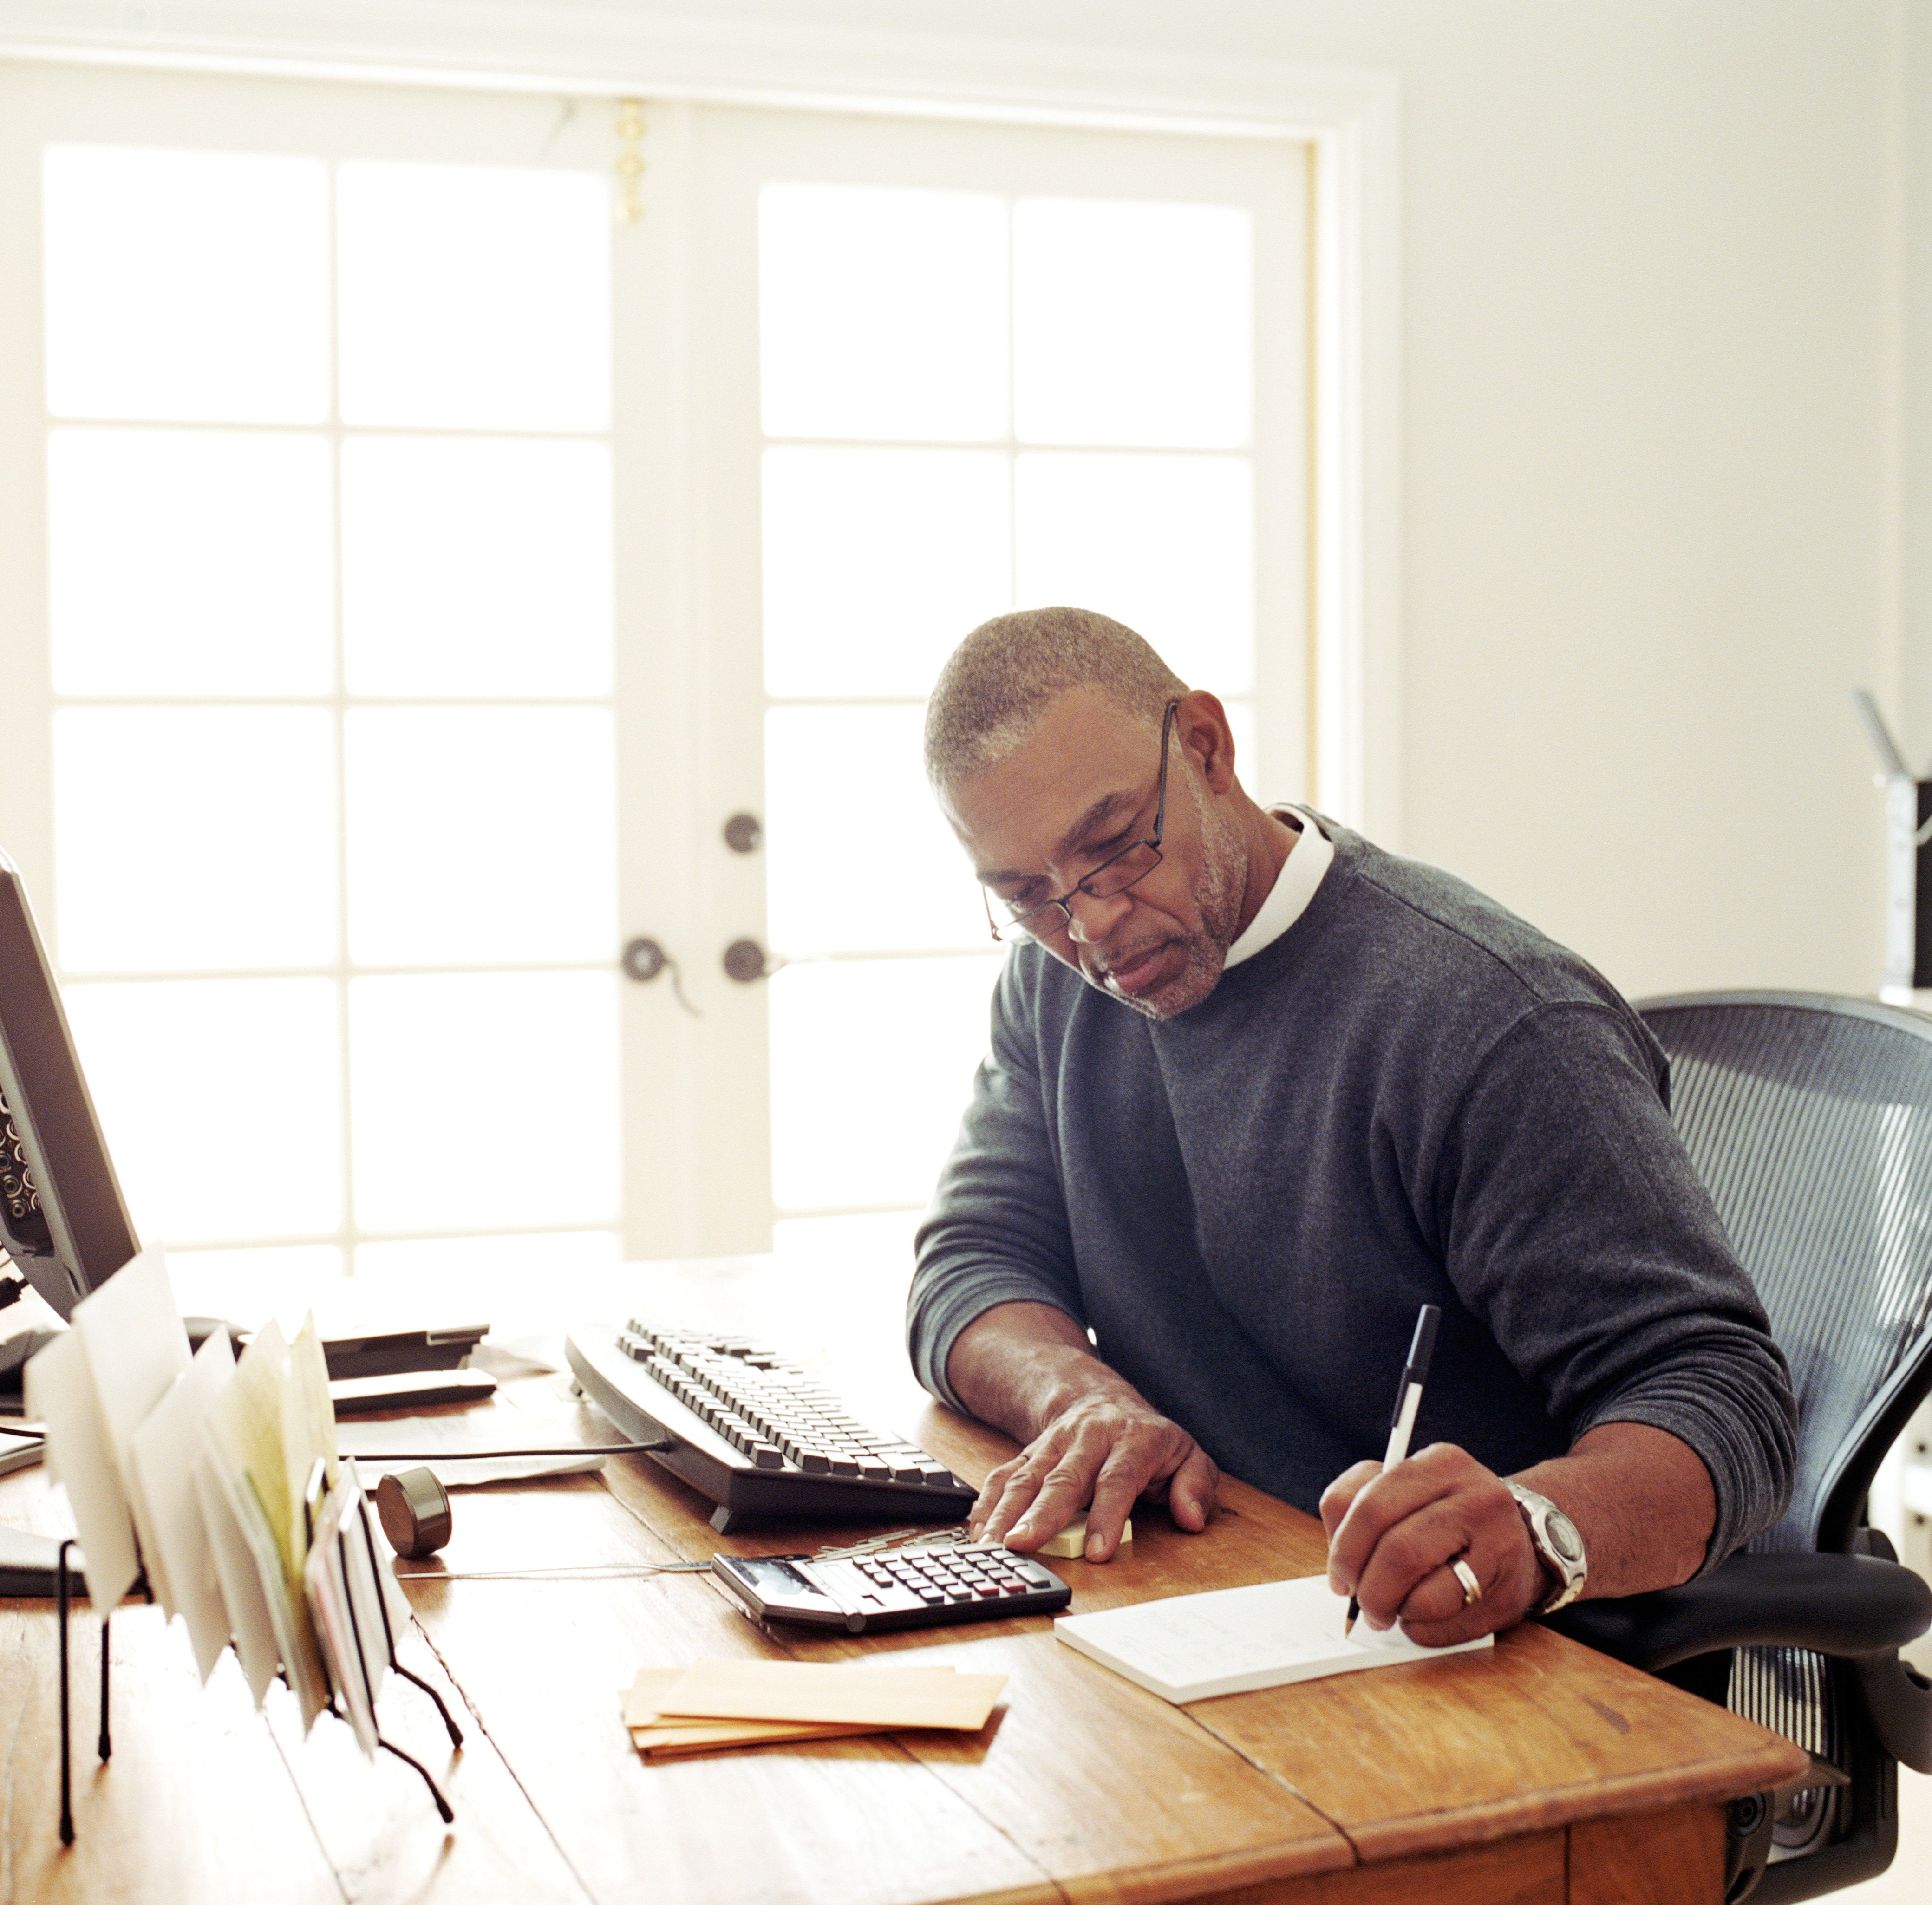 Mature Man Working Remotely at Home